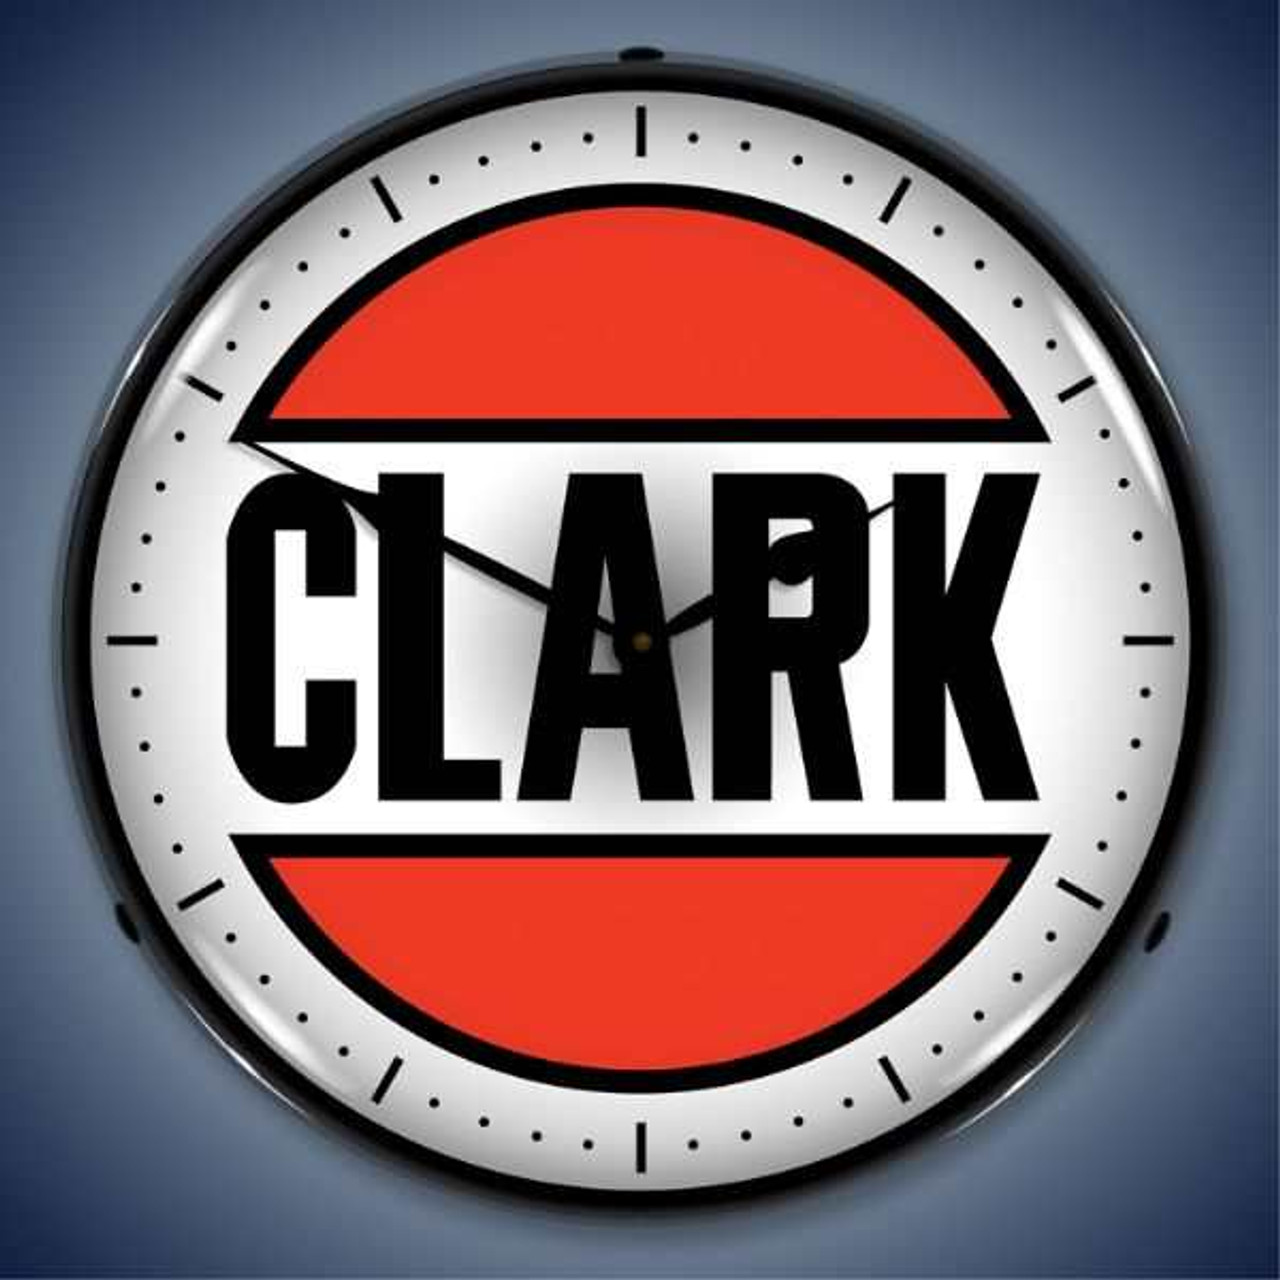 Retro  Clark Gas Lighted Wall Clock 14 x 14 Inches